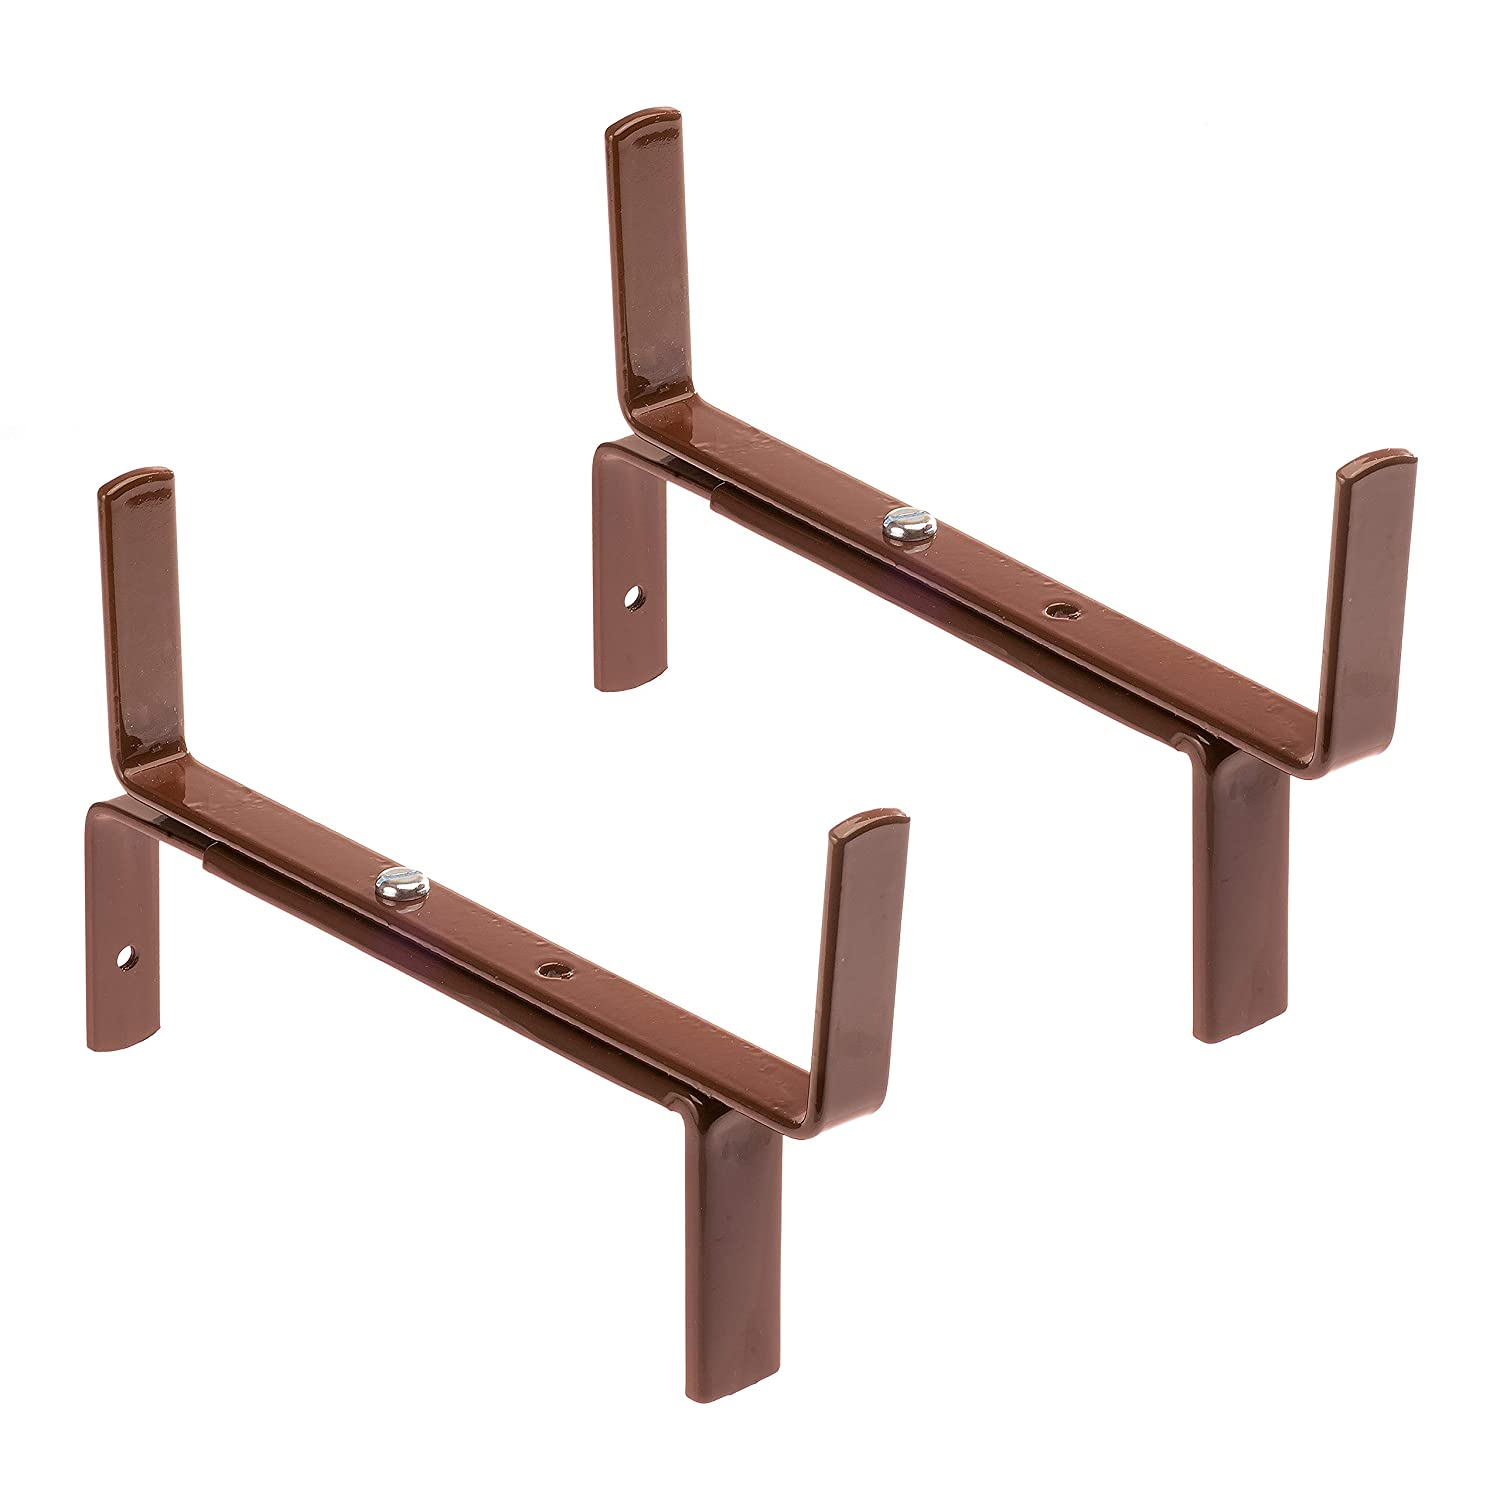 Made in Germany ǀ adjustable brackets for hanging baskets for walls 12-20cm H-form ǀ flower box holder for plant pots and boxes up to 20cm width ǀ trough brackets HANGING BASKET BRACKETS Muro Maxi 1 pair Stainless Steel by 4smile